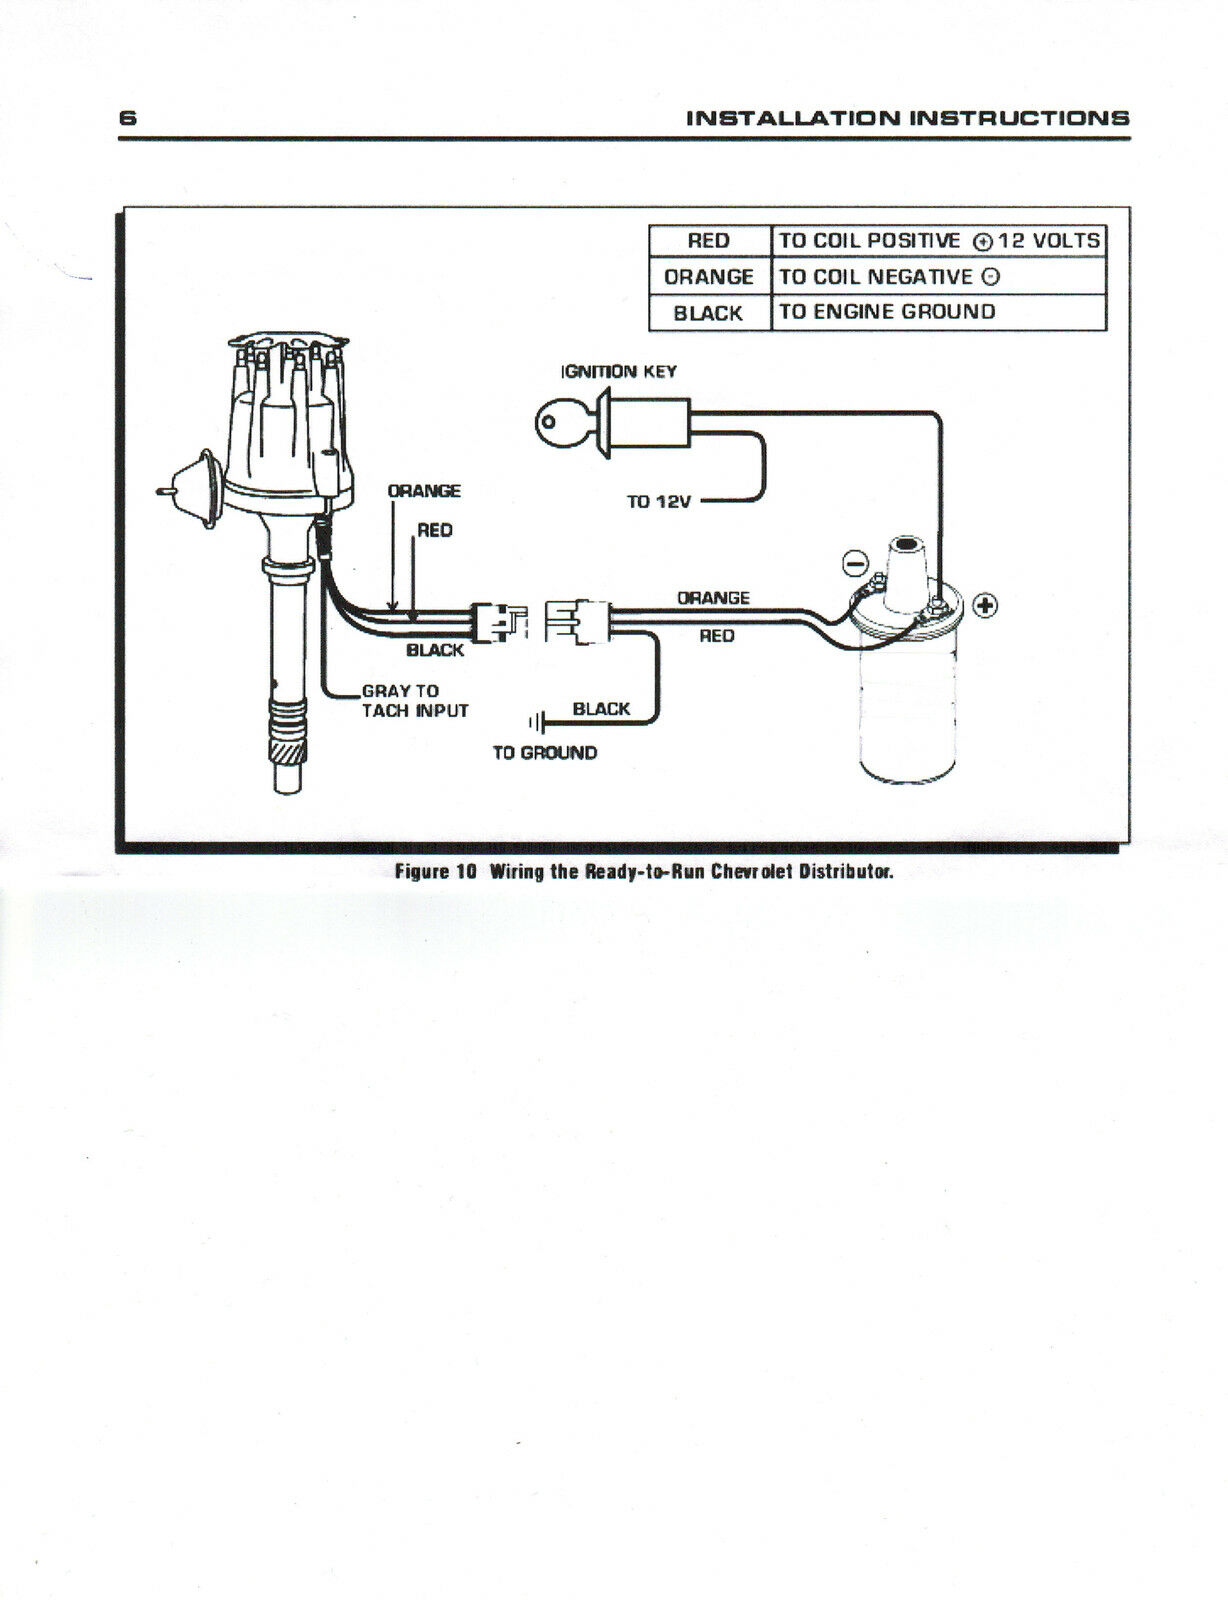 6 cylinder hei wiring diagram schematics wiring diagrams u2022 rh seniorlivinguniversity co Chevy HEI Distributor Diagram GM HEI Distributor Components